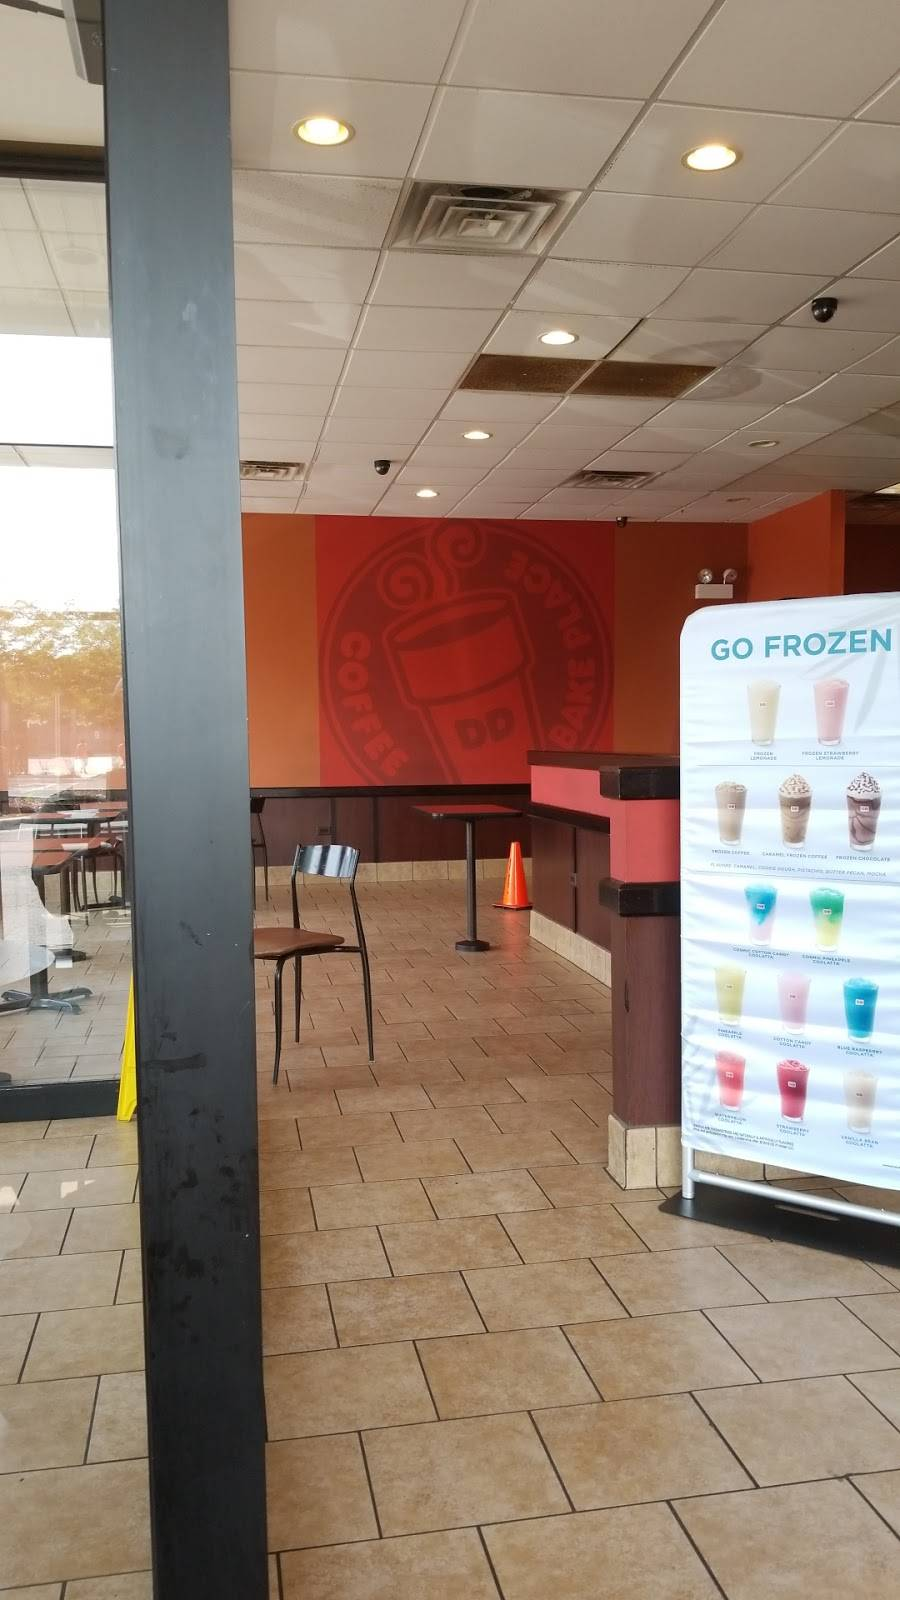 Dunkin Donuts | cafe | 6237 S Halsted Pkwy, Chicago, IL 60621, USA | 7737838328 OR +1 773-783-8328